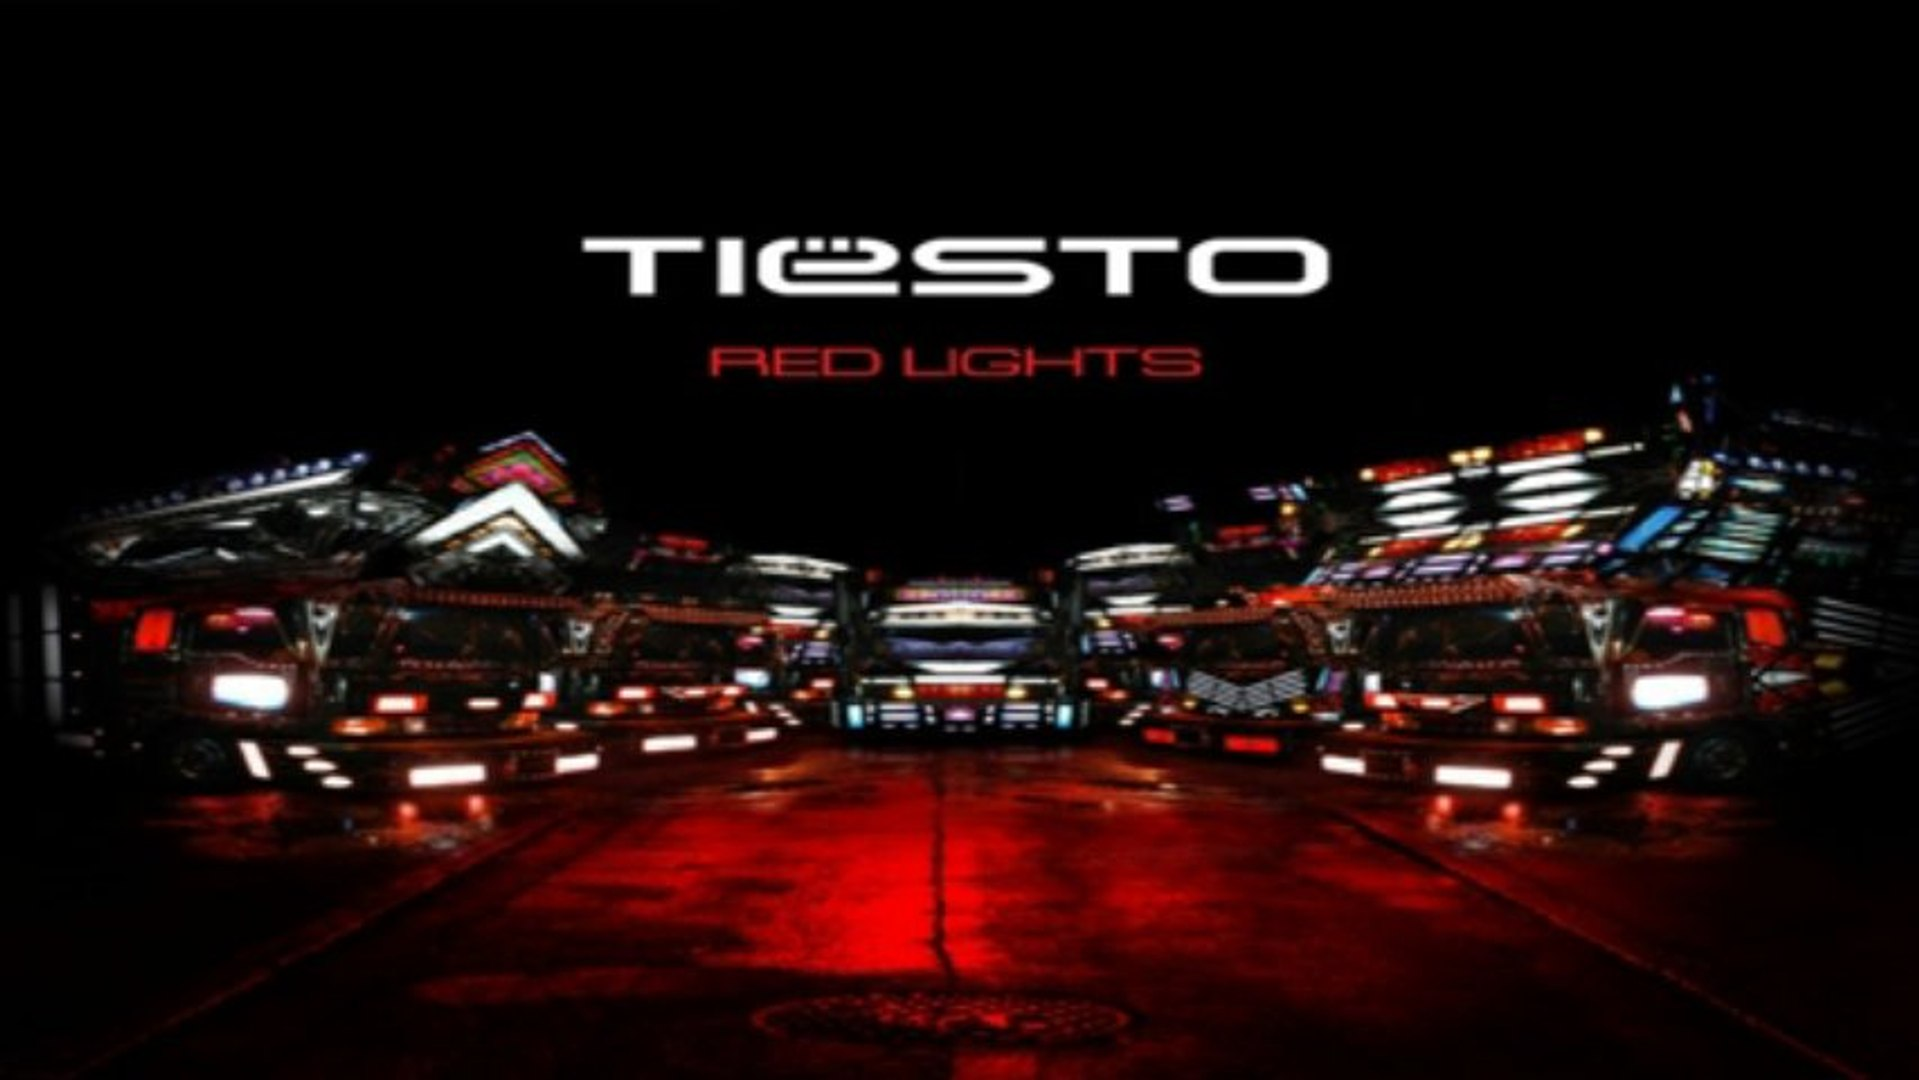 [ DOWNLOAD MP3 ] Tiësto - Red Lights [ iTunesRip ]